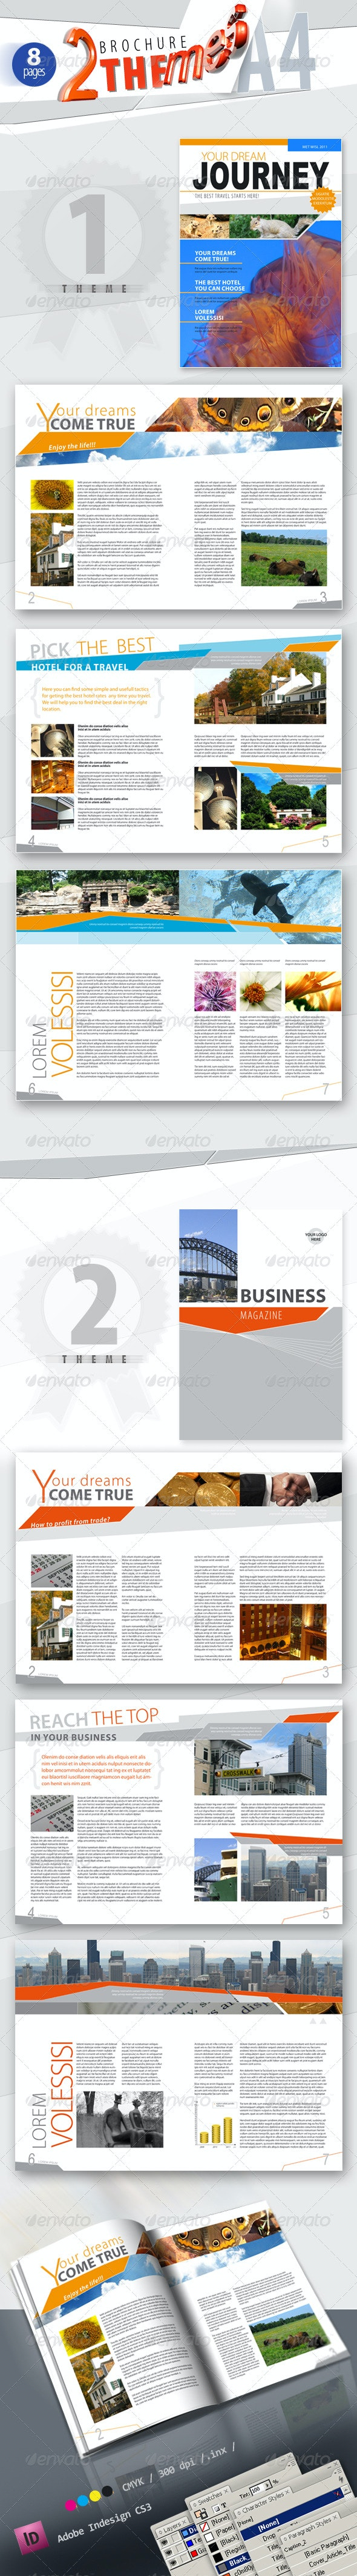 A4 Brochure / Magazine in 2 Themes & 2 Color Scheme - Magazines Print Templates